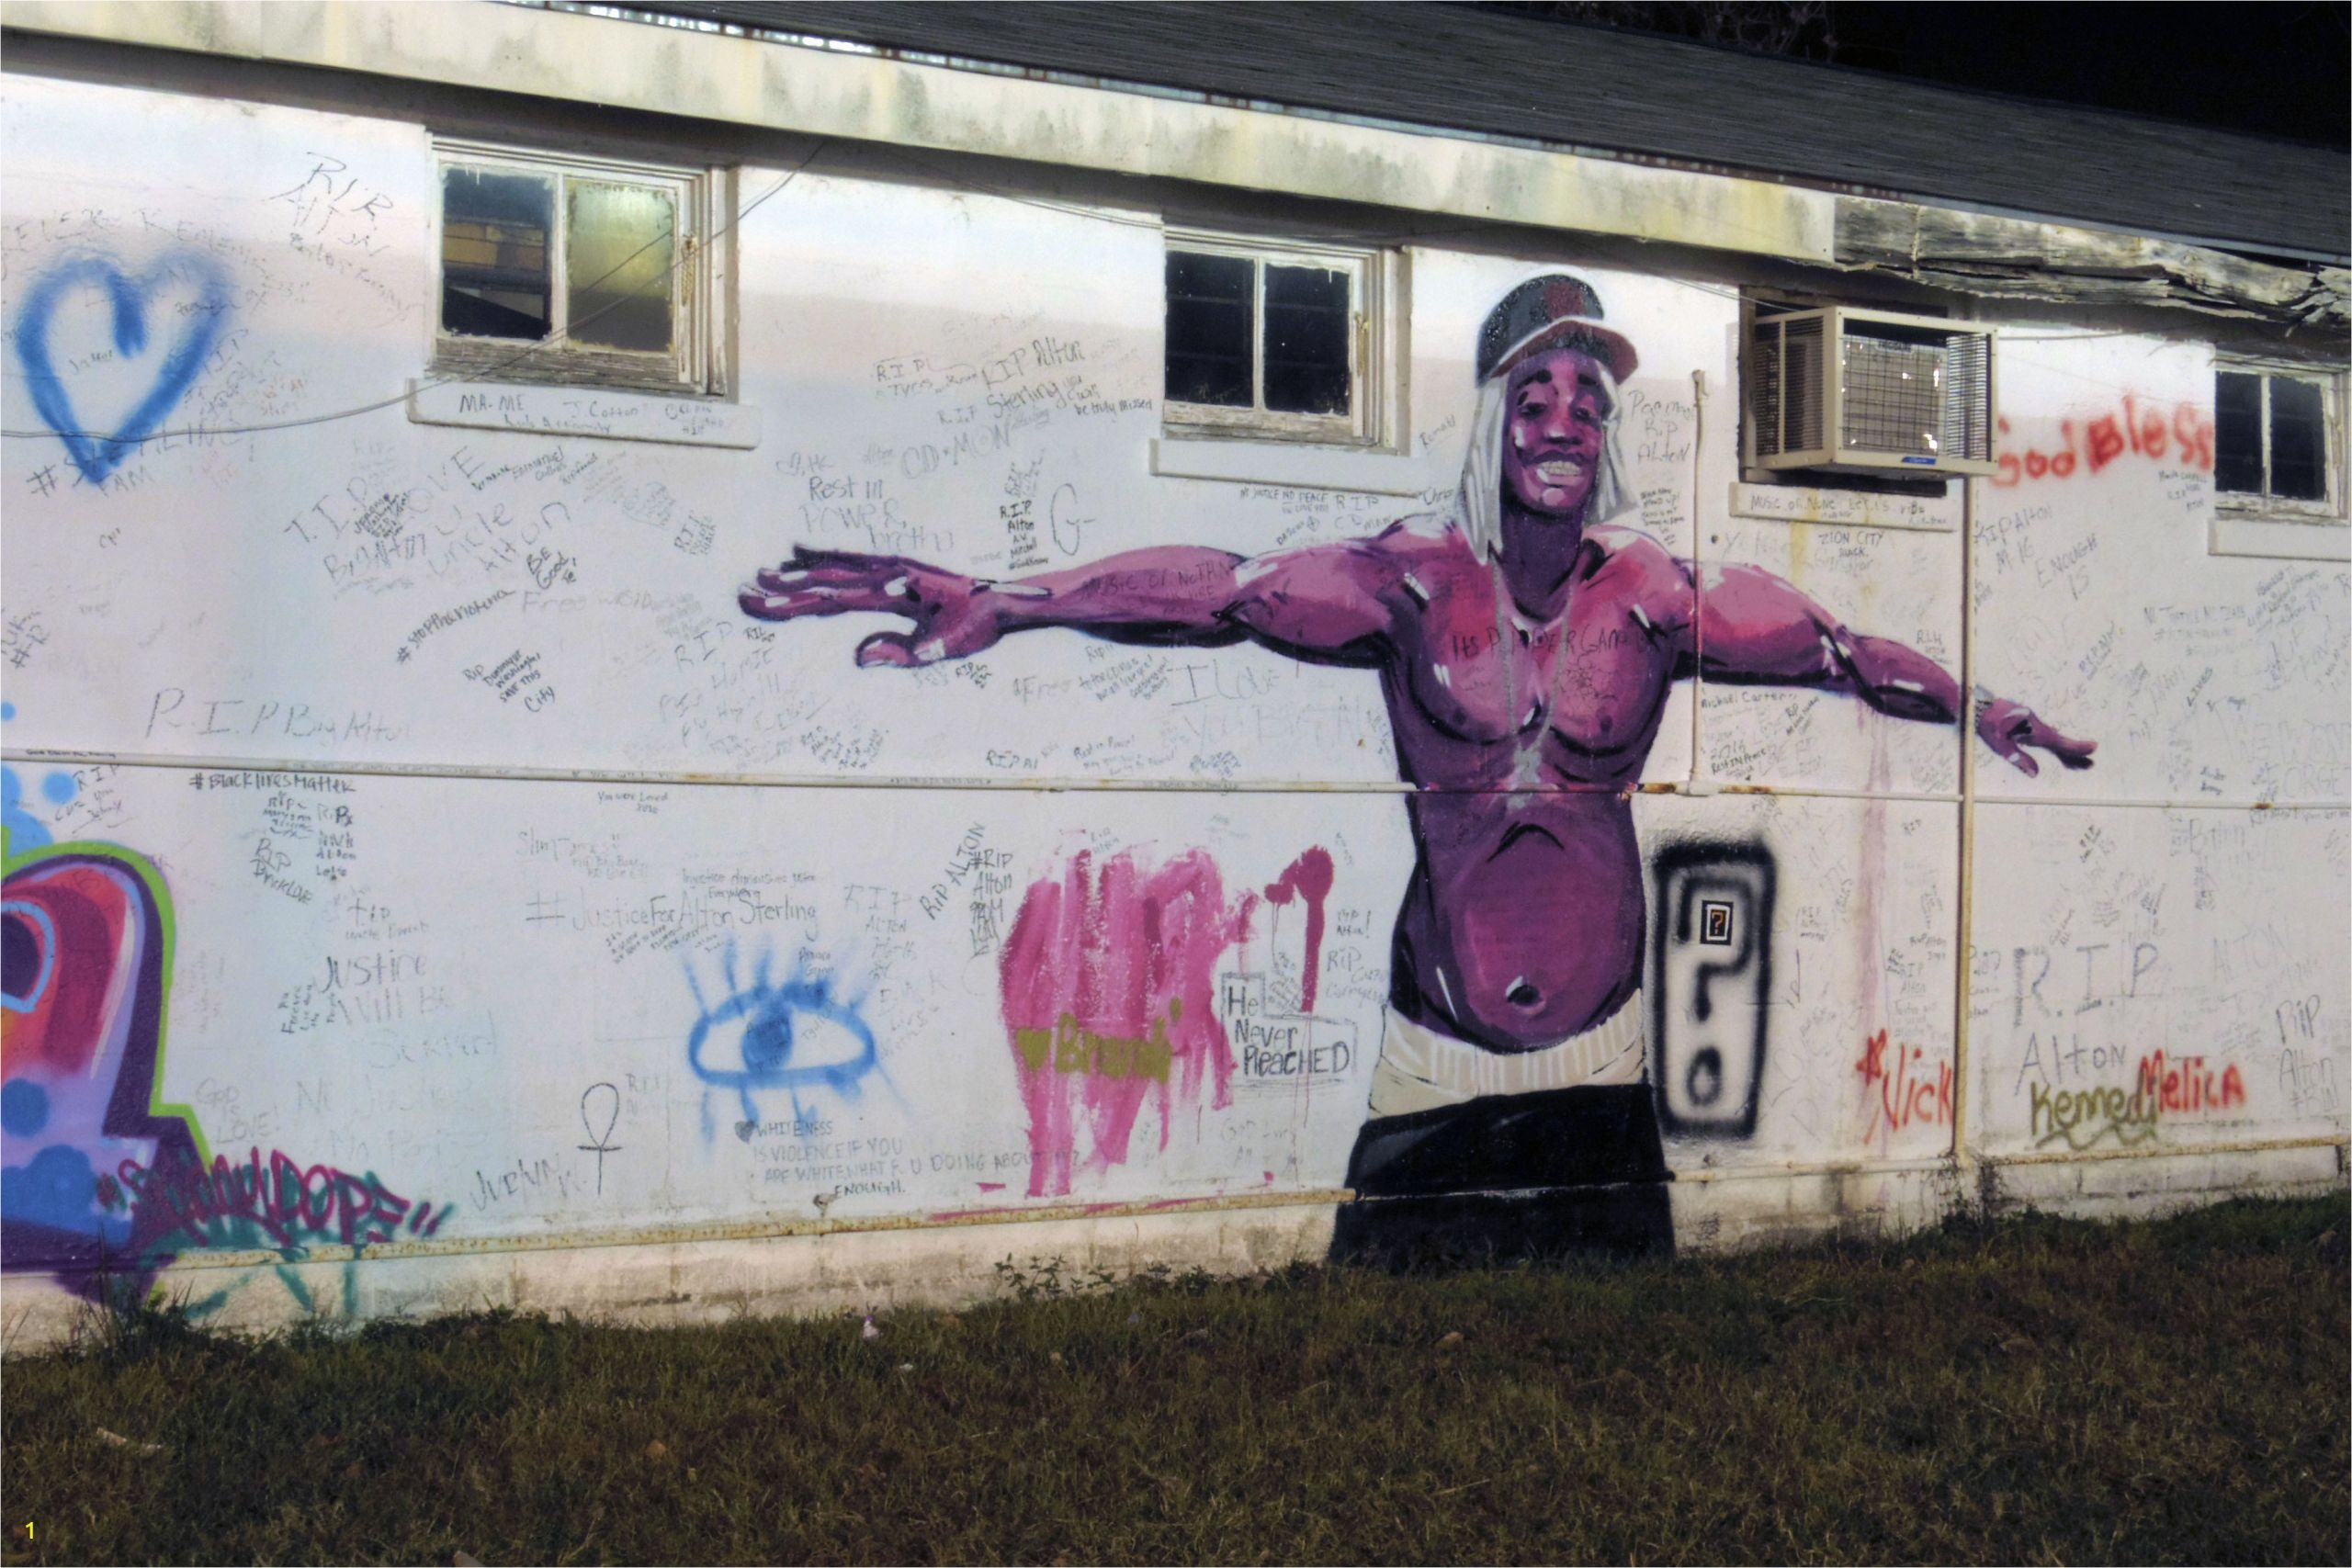 Street art of a black man in Baton Rouge